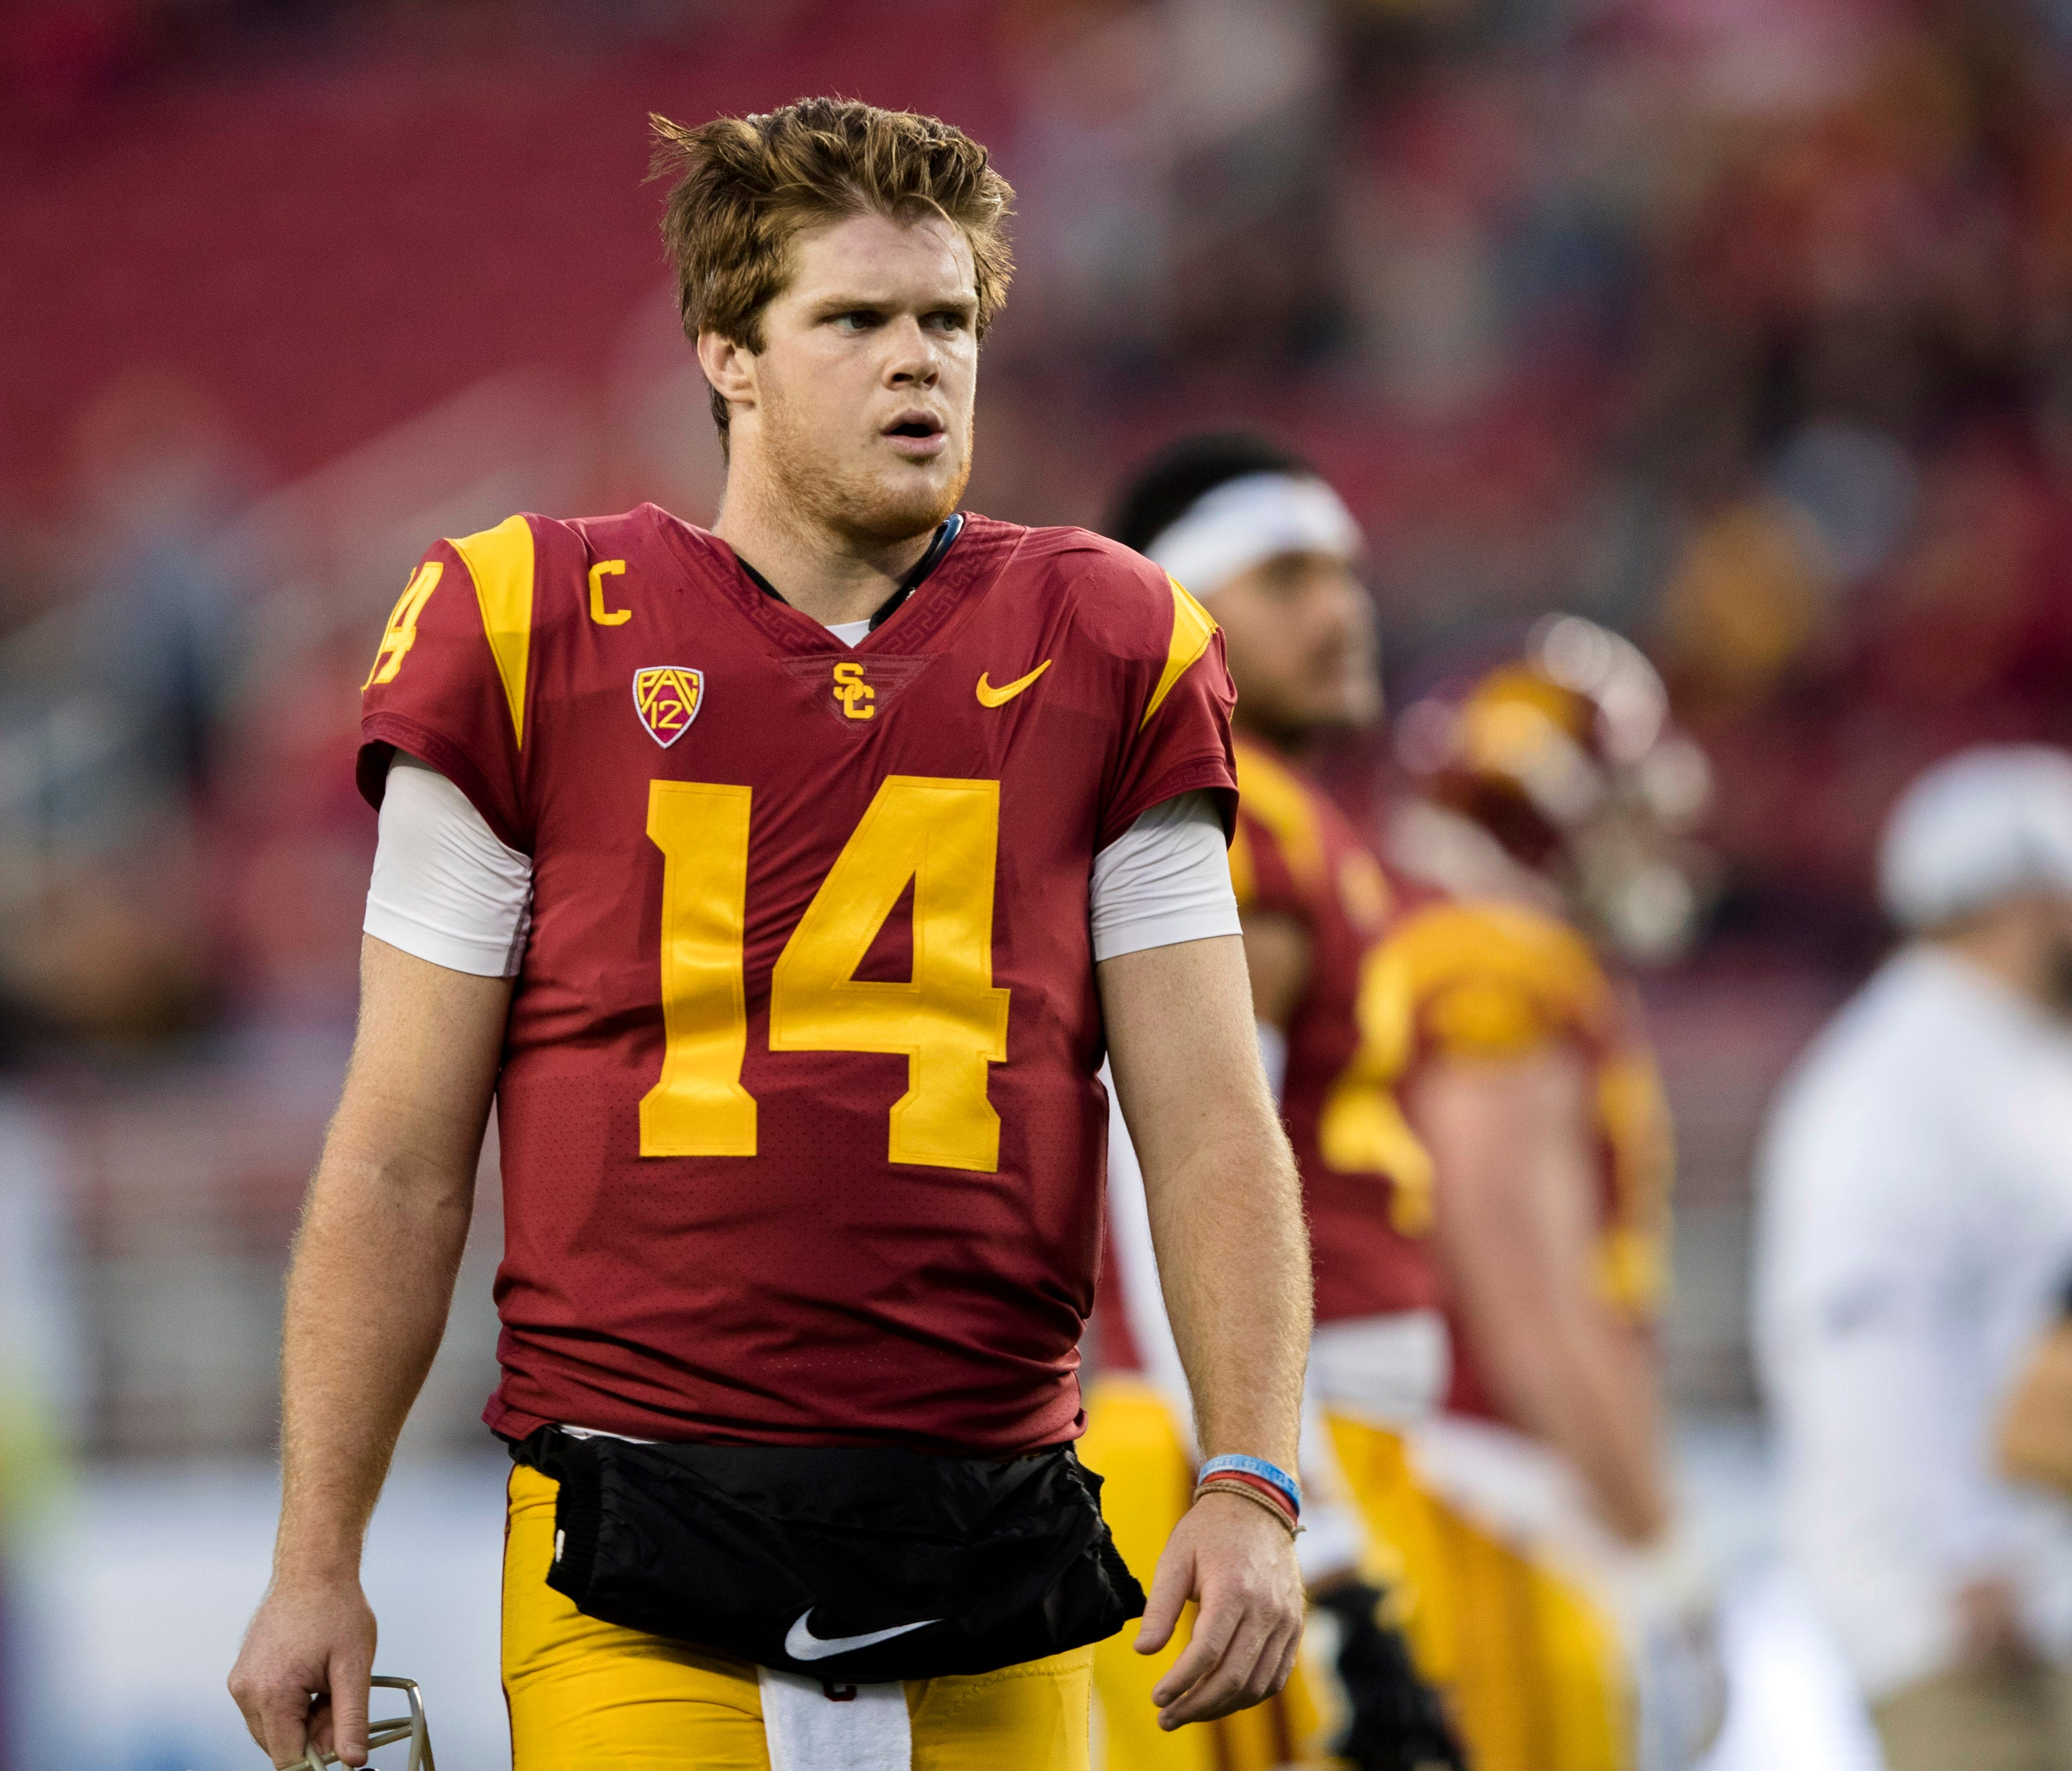 USC Trojans quarterback Sam Darnold (14) watches warmups before the game against the Stanford Cardinal in the Pac-12 Conference championship game at Levi's Stadium.